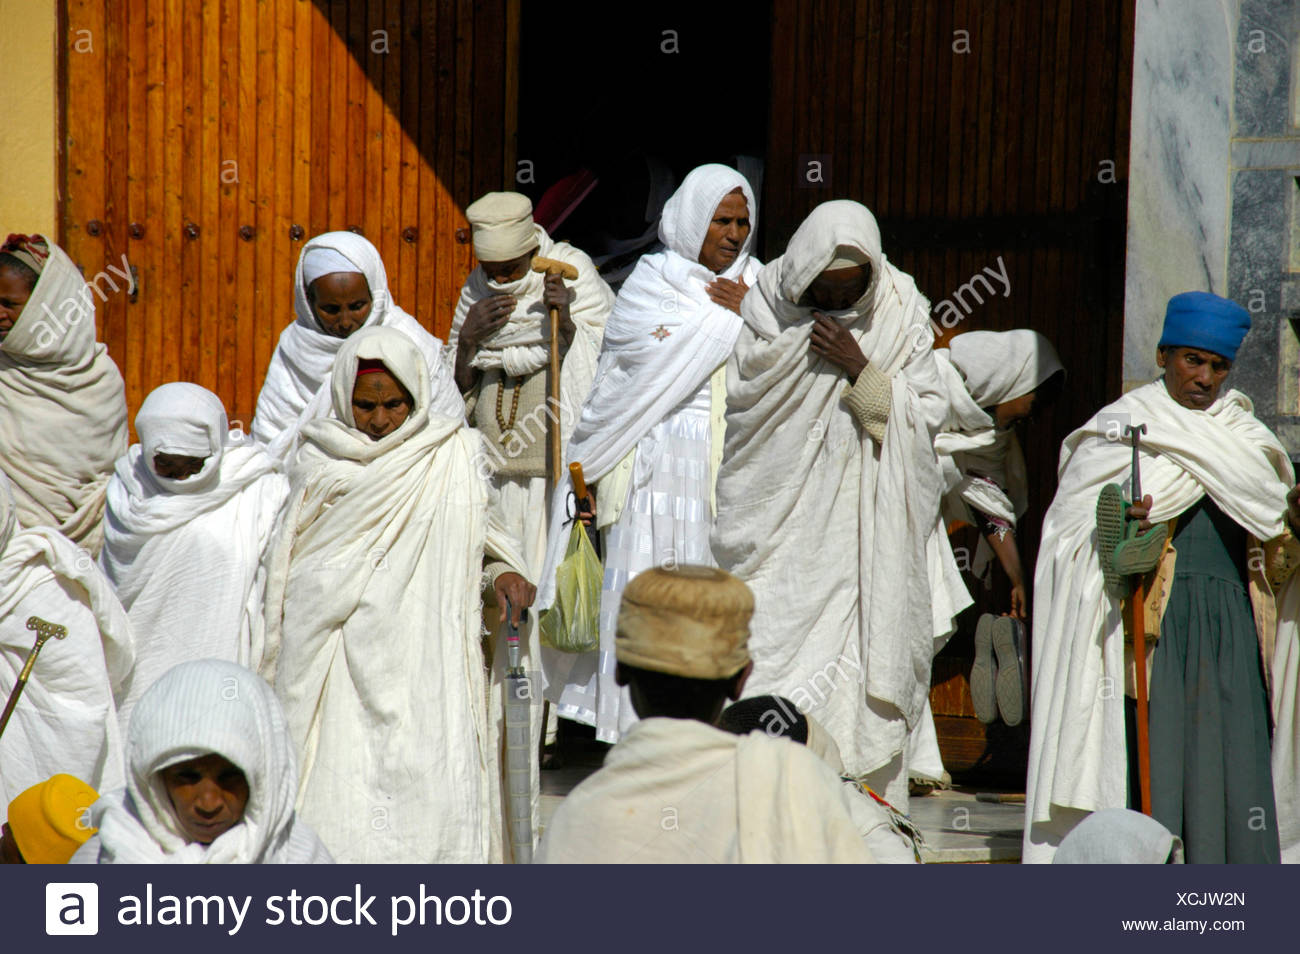 Believers of the Ethiopian Orthodox Church covered in white cloths in front of the new cathedral, Aksum, Ethiopia, Africa - Stock Image